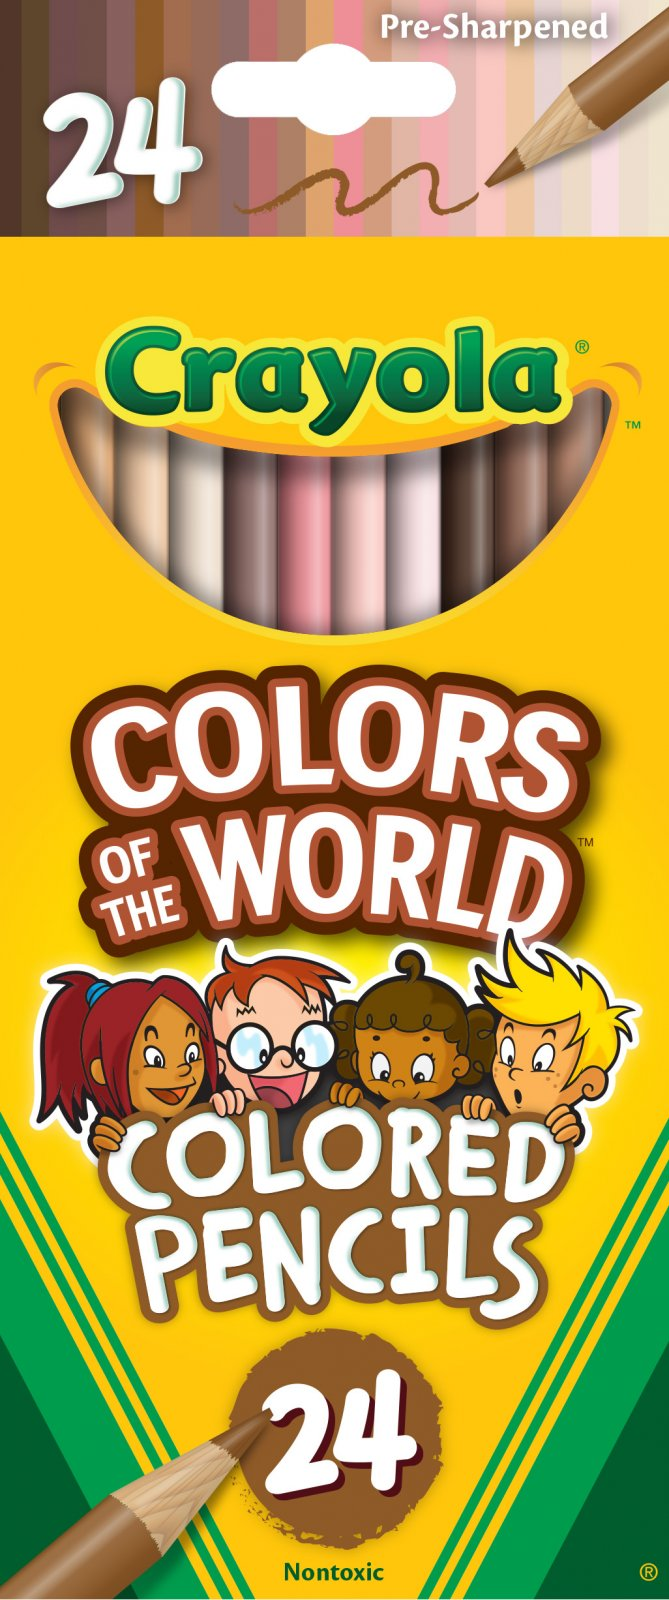 Crayola Colors of the World Colored Pencils 24 ct.